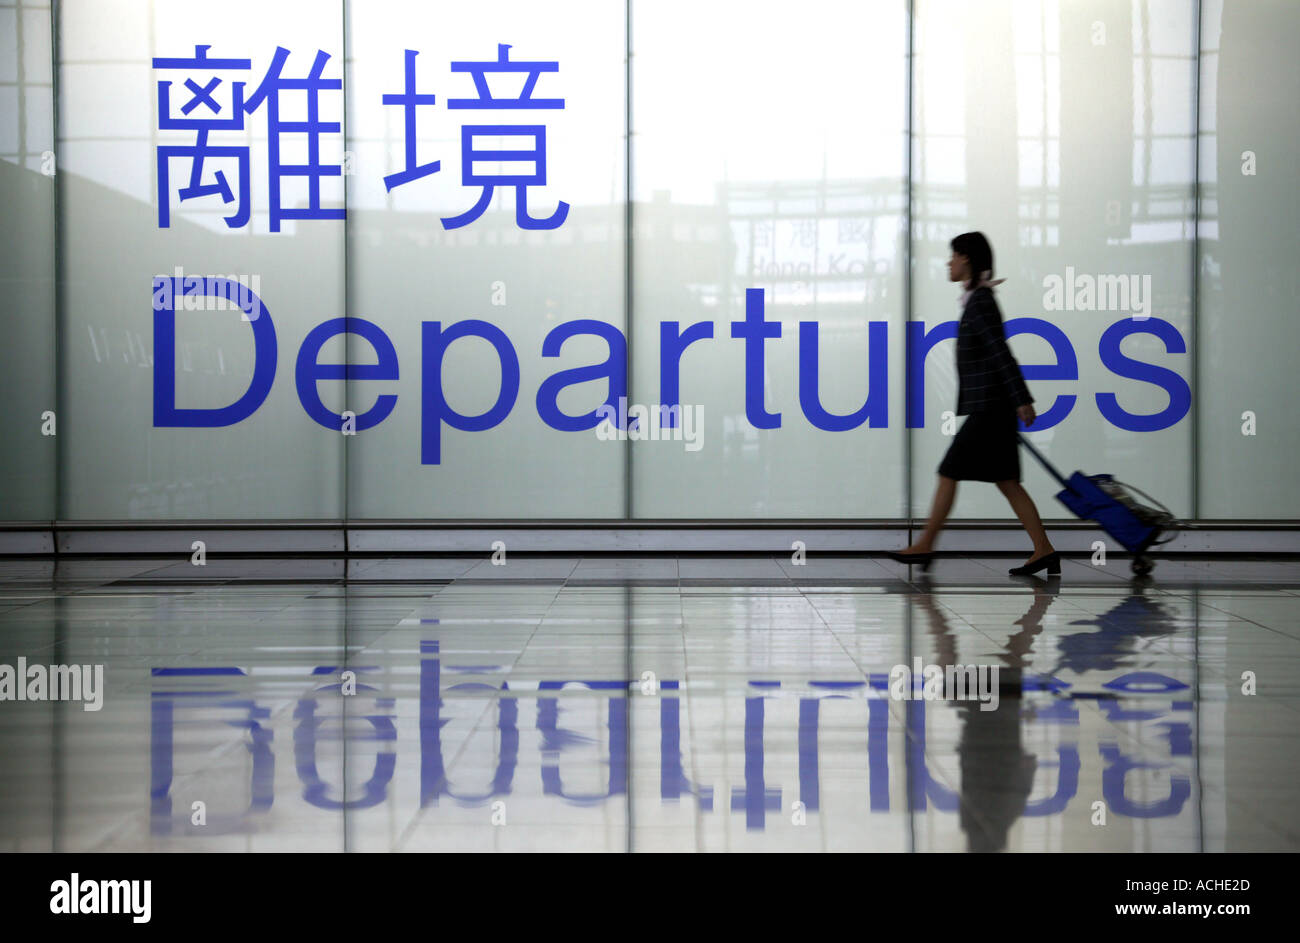 Hong Kong Airport Depature sign - Stock Image